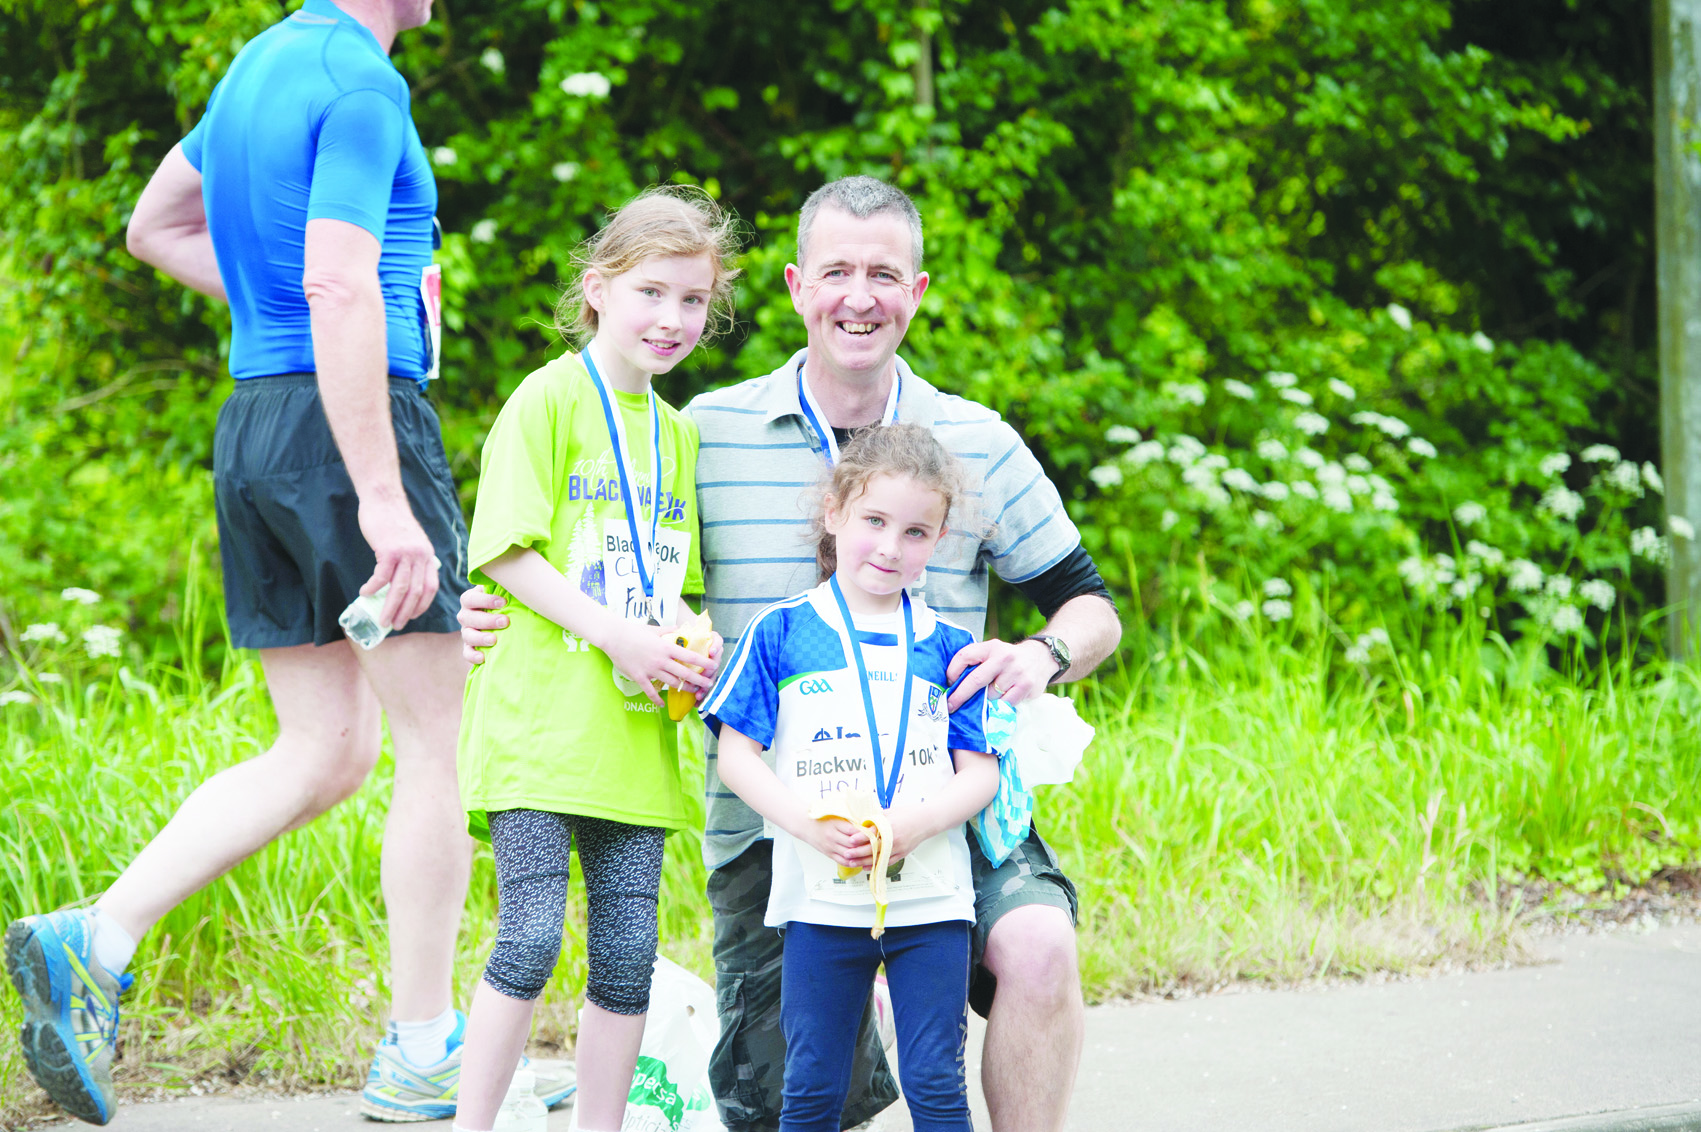 Colm Murphy and daughters after the fun run. ©Rory Geary/The Northern Standard